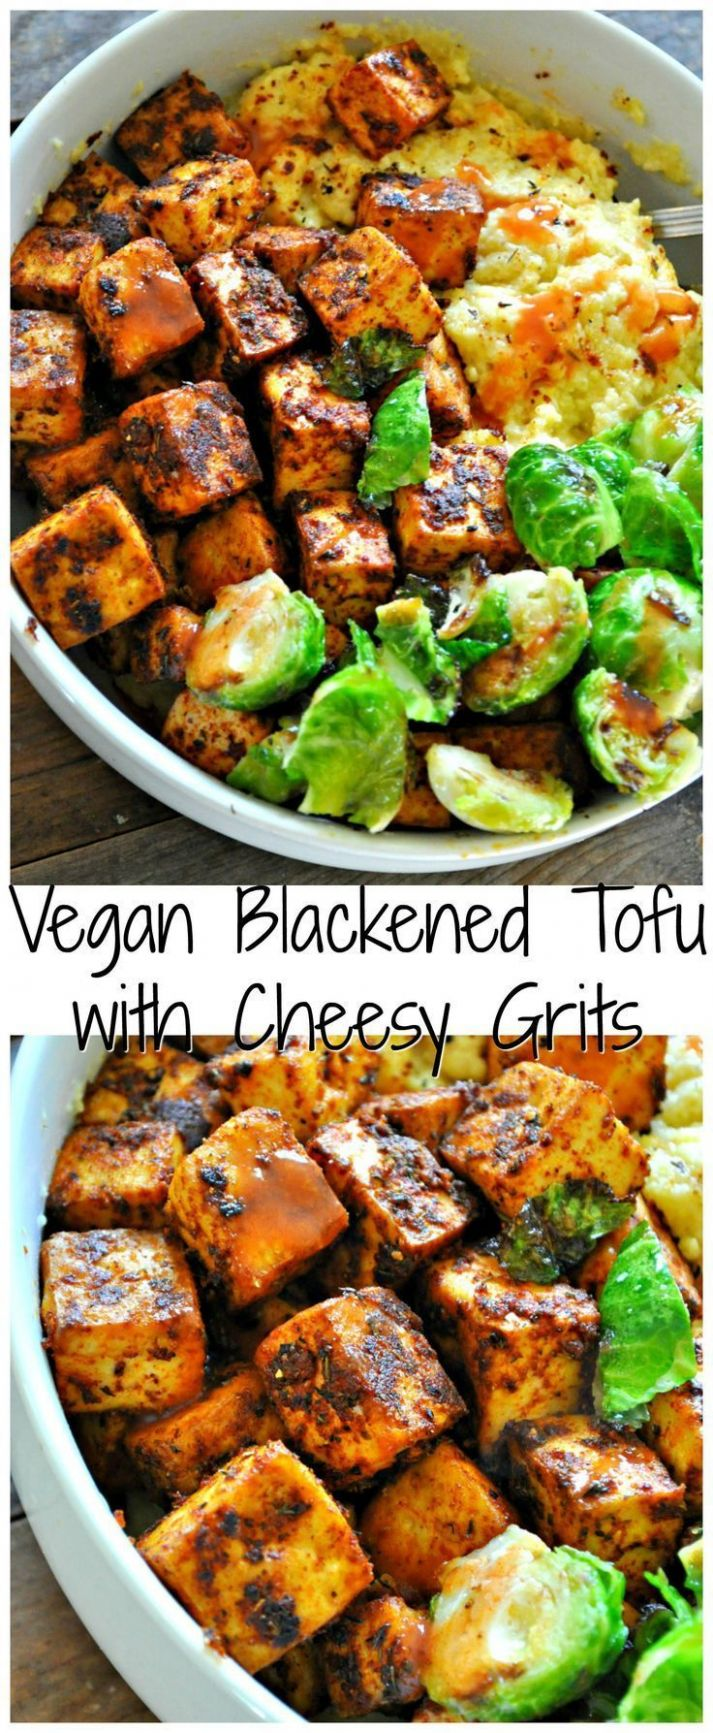 Vegan Blackened Tofu with Cheesy Grits - Vegetarian Recipes On Pinterest